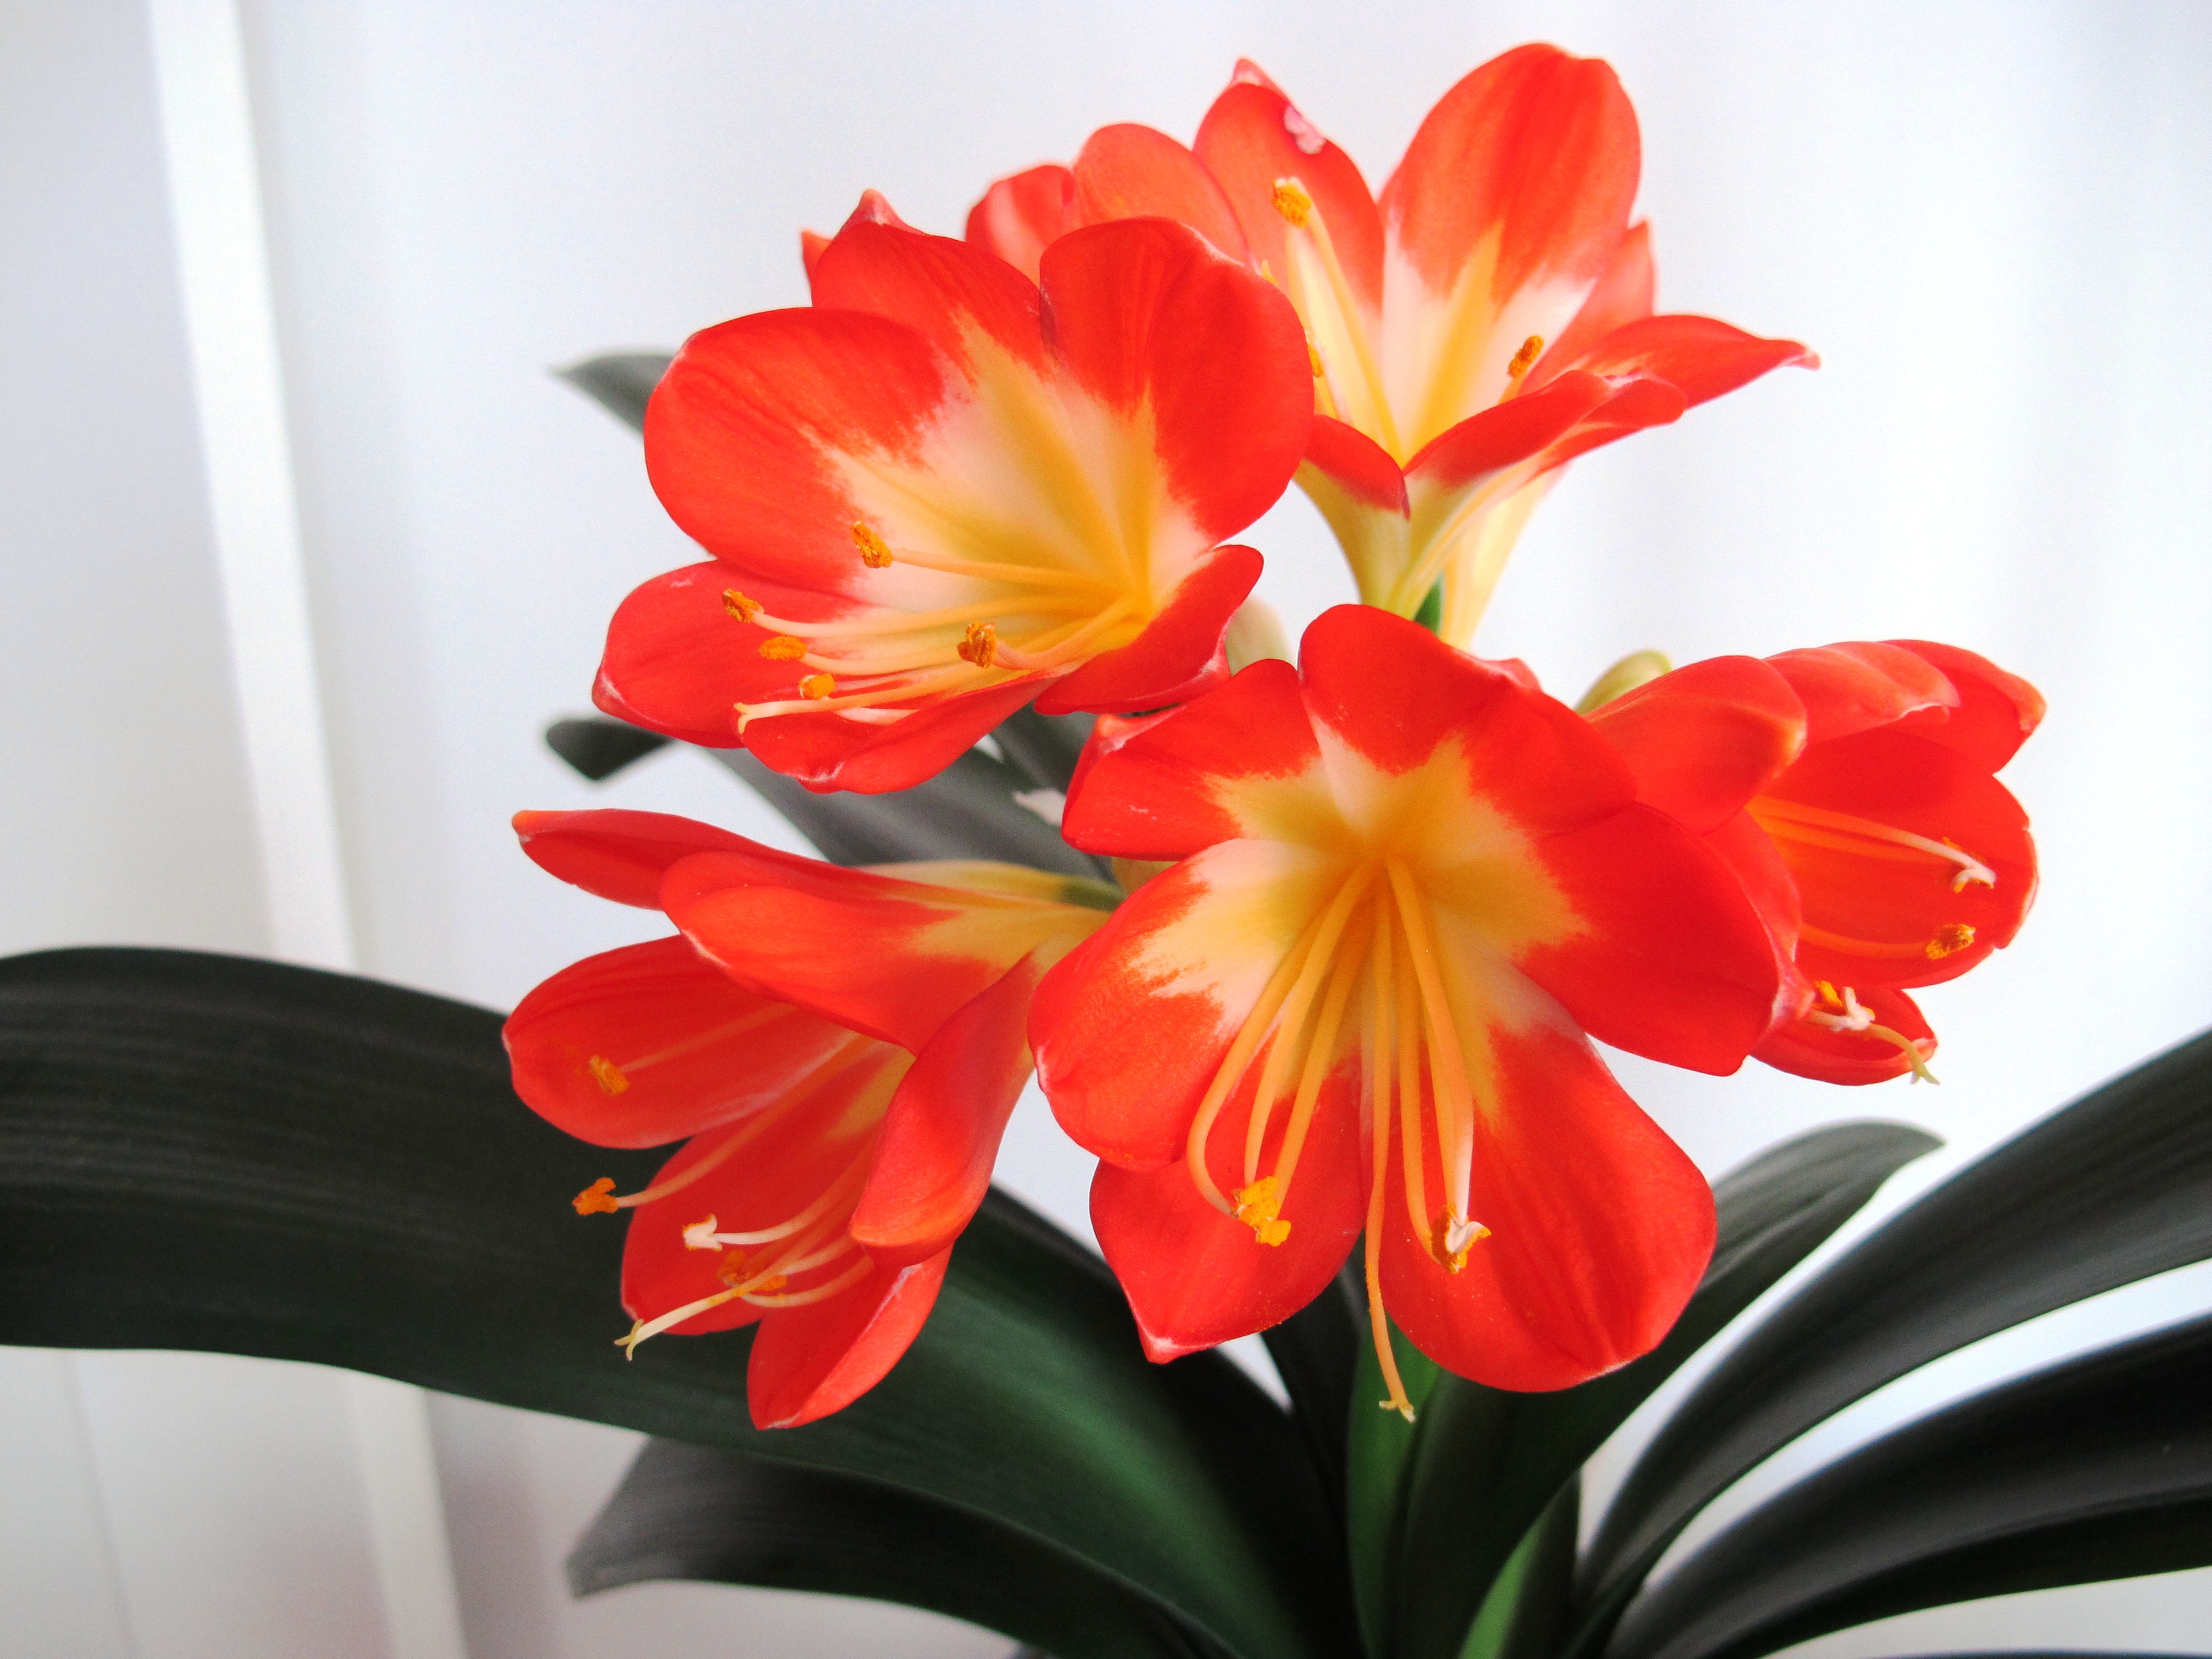 Best Kitchen Gallery: Charming Chinese Clivias Houseplants Now of Orange Tropical Flowering House Plant on rachelxblog.com